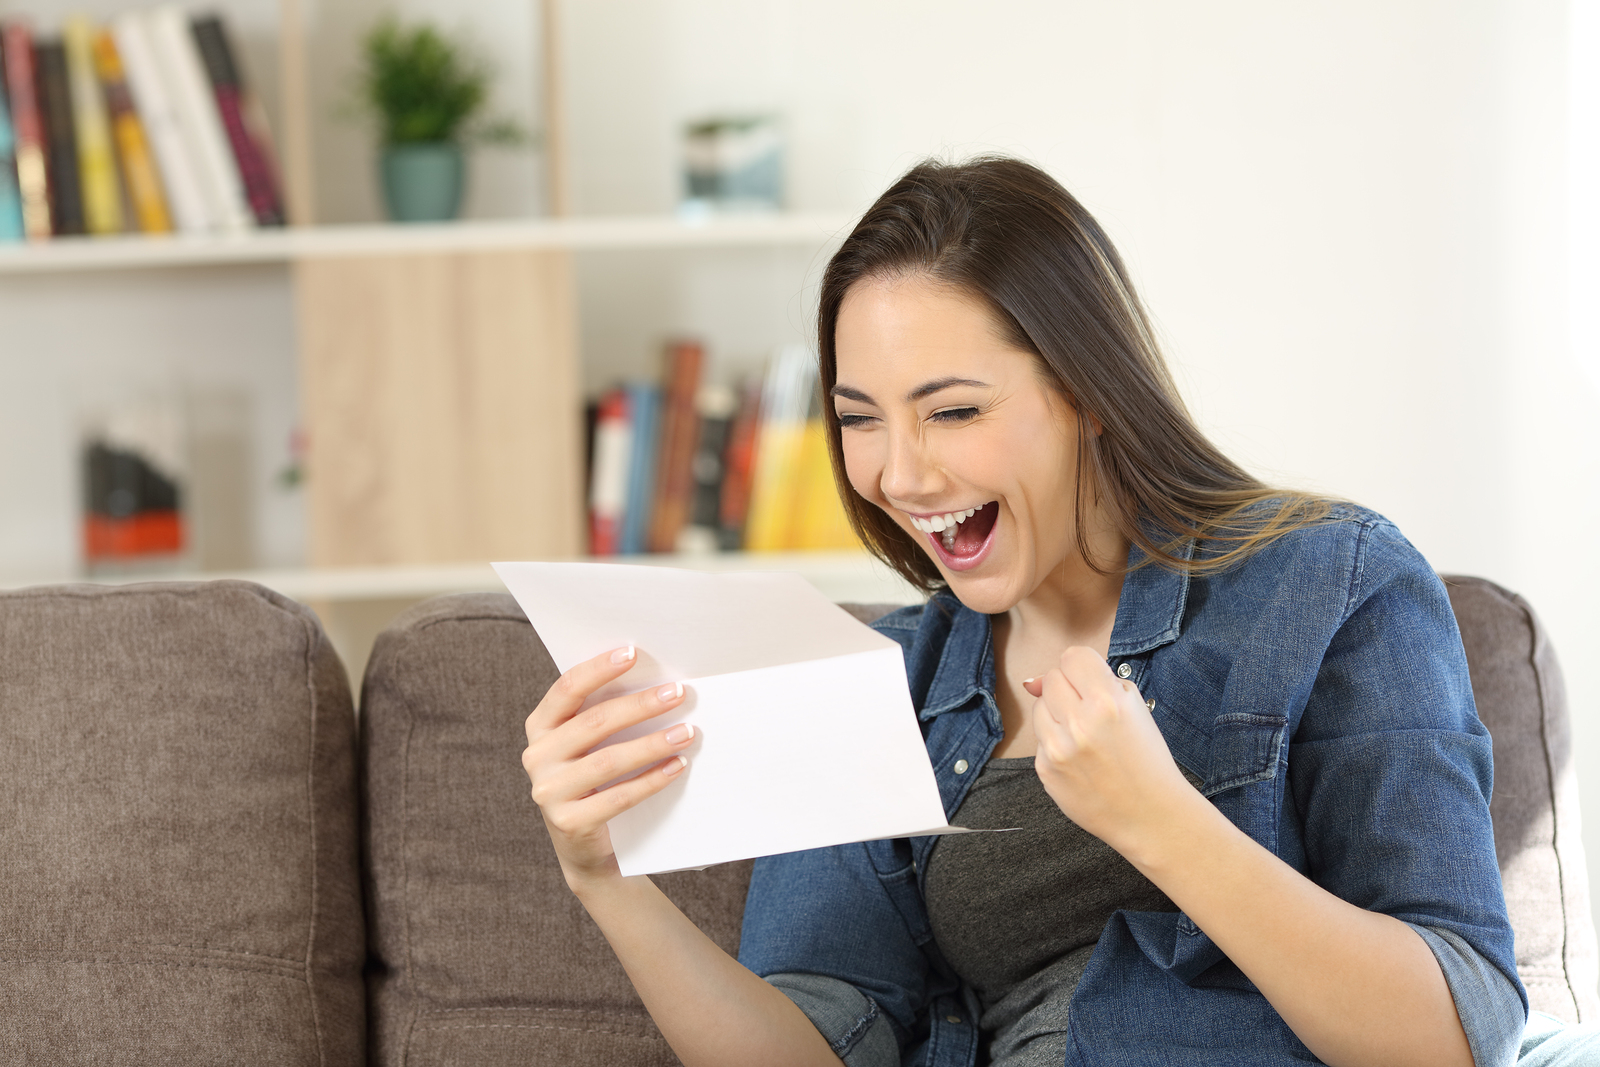 Excited woman reading great news in a letter sitting on a couch in the living room at home